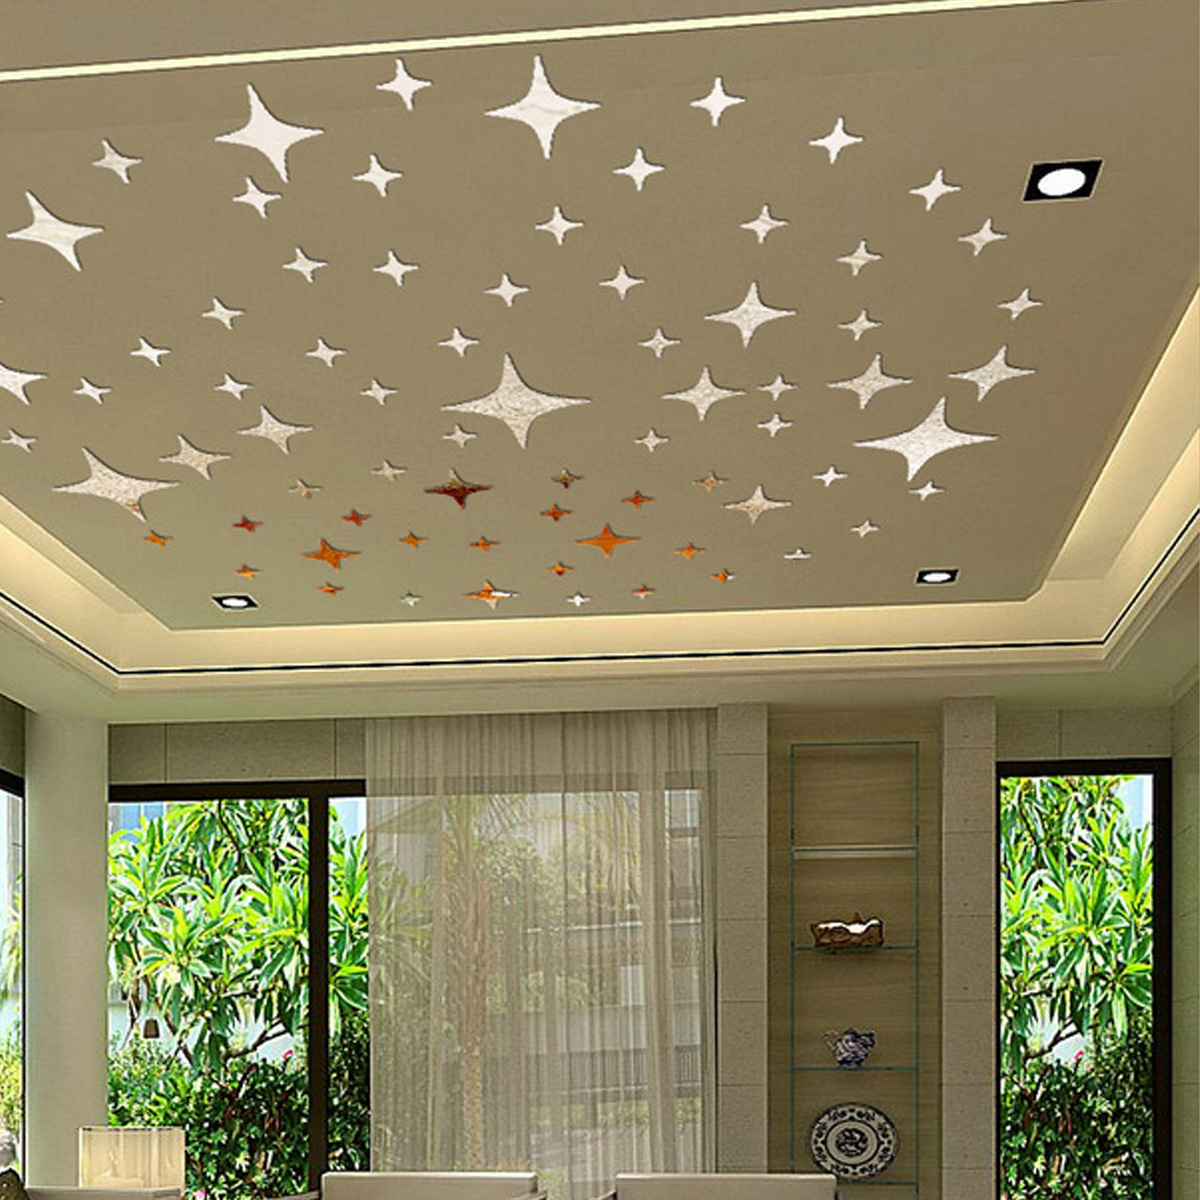 43 sky stars mirror ceiling wall stickers room decor for Room decor lazada